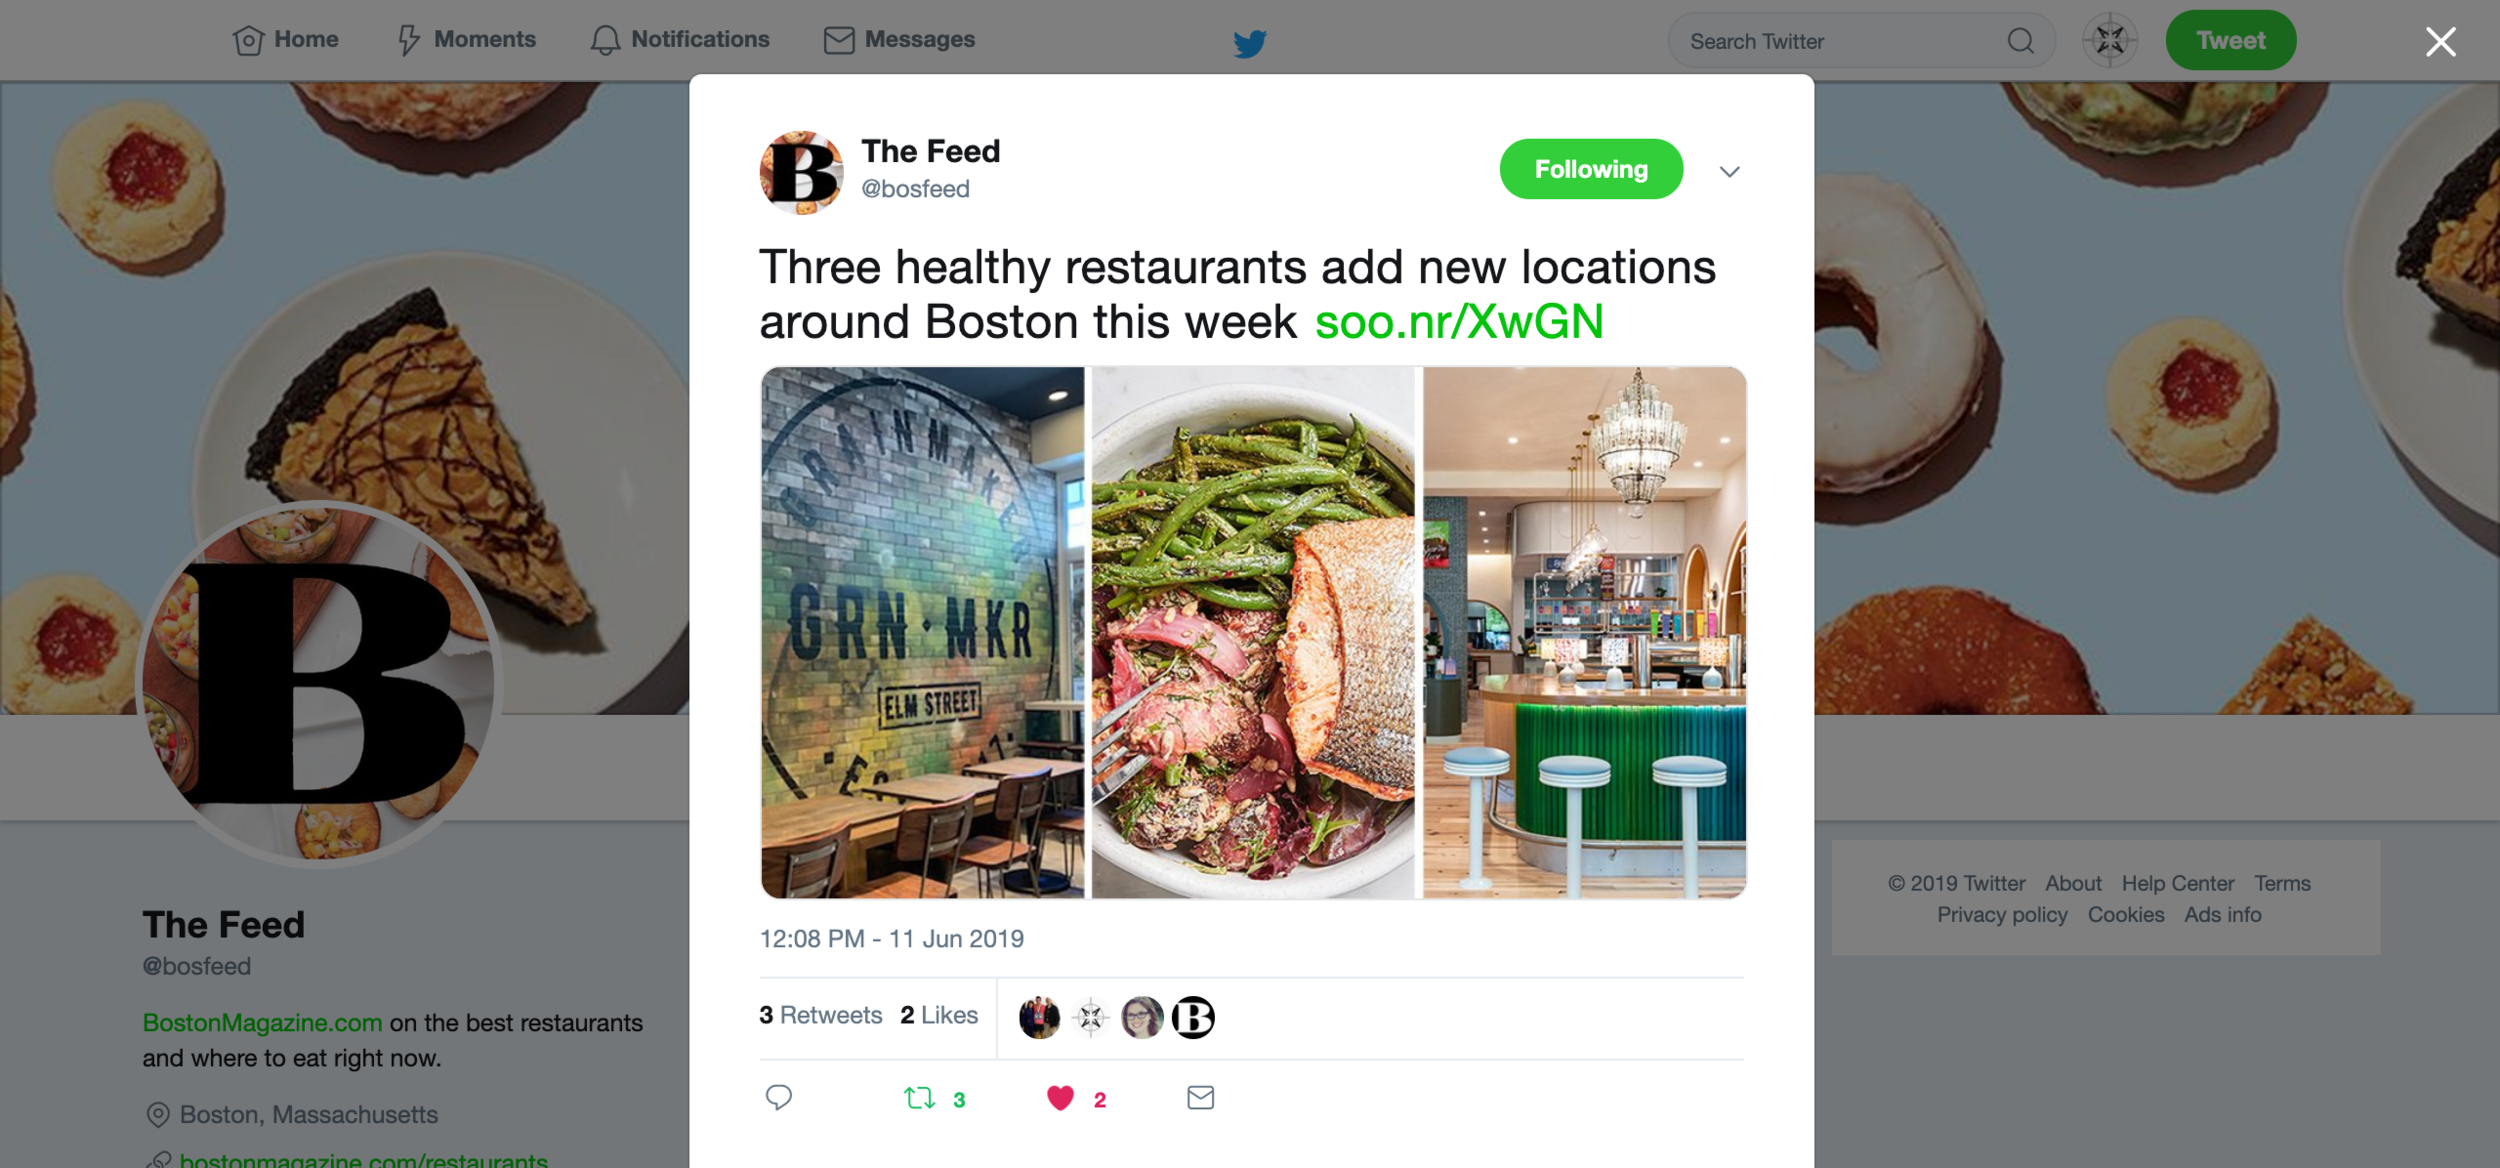 2019.06.11_Boston Magazine, The Feed, Twitter_Life Alive Back Bay.png